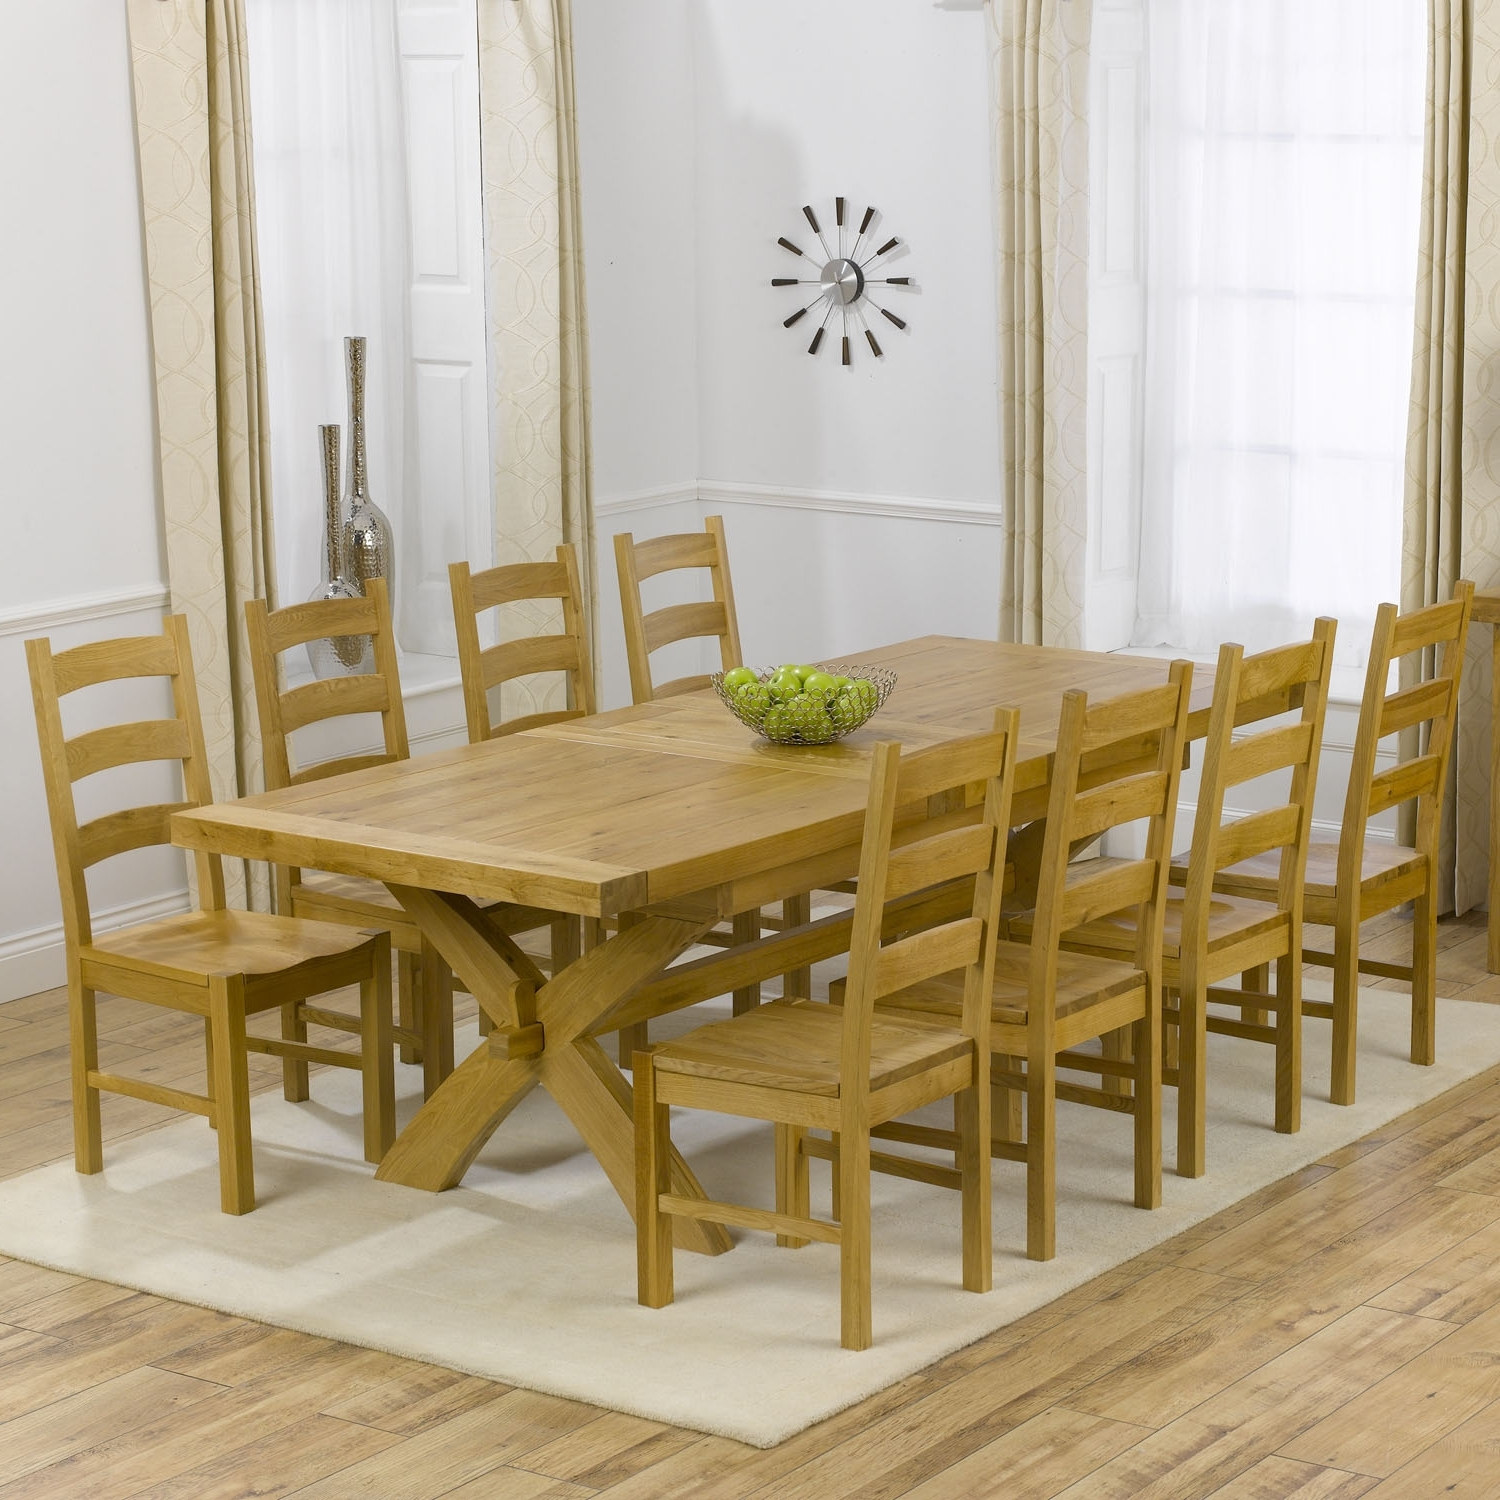 Well Liked Eight Seater Dining Tables And Chairs Inside Dining Tables (View 24 of 25)